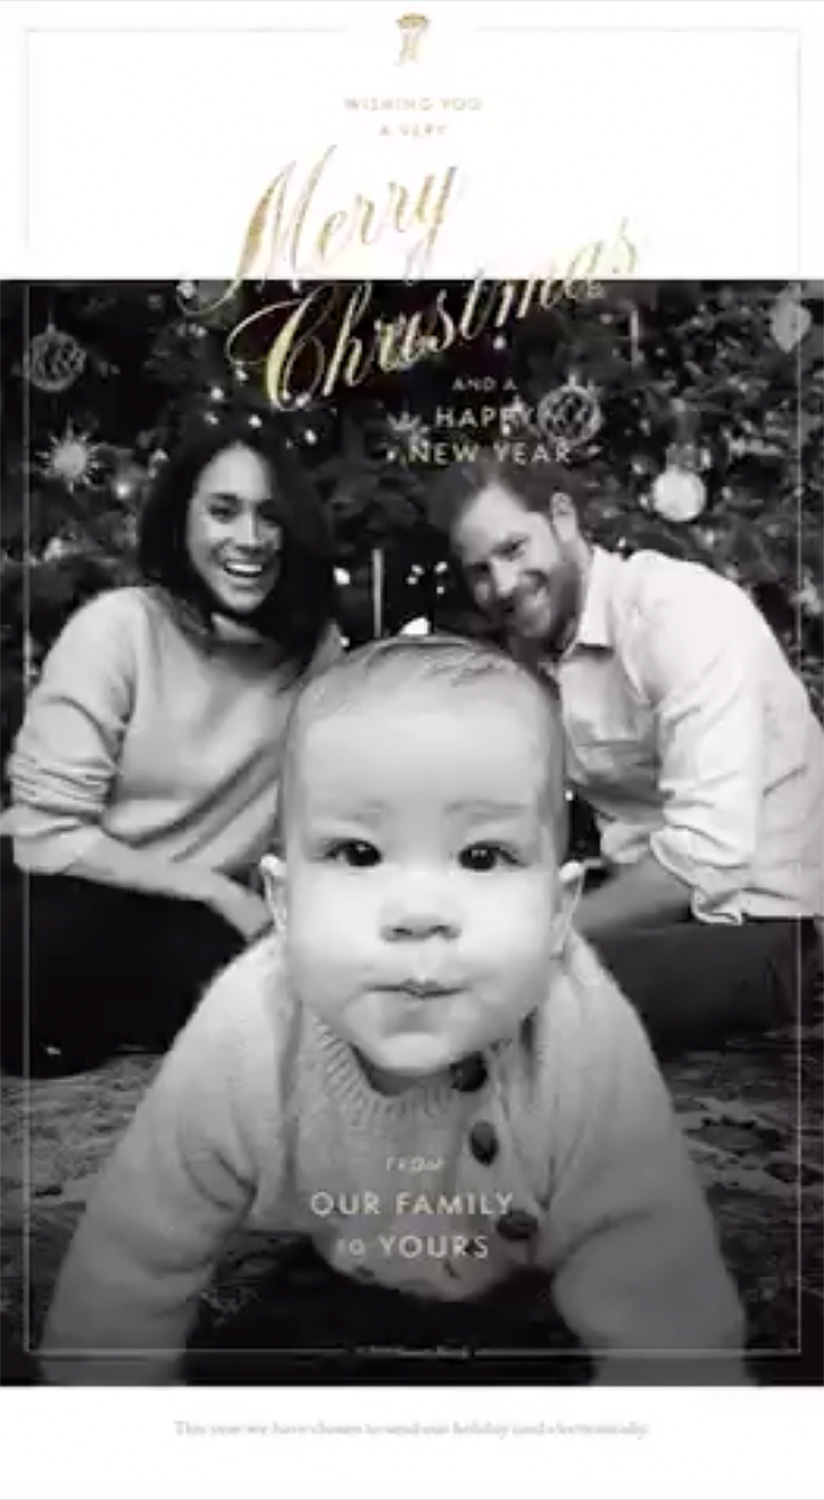 Harry and Meghan, Duke and Duchess of Sussex and Baby Archie Christmas Card